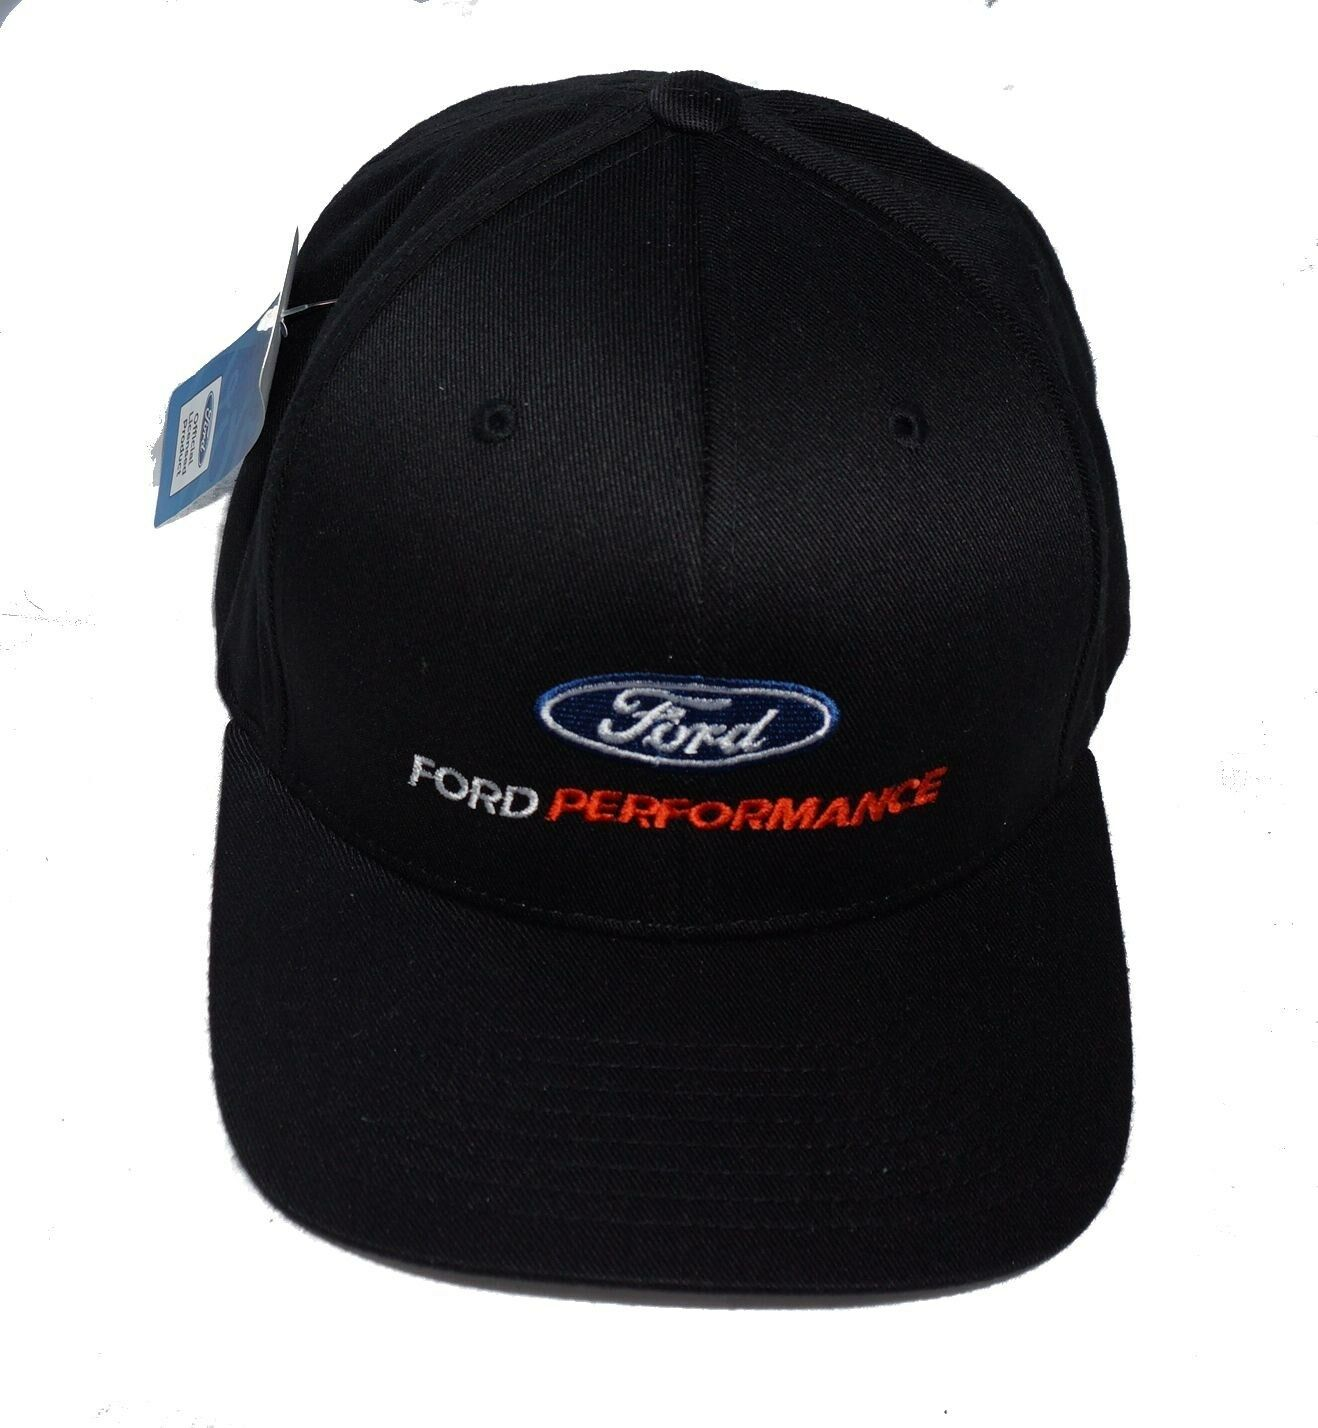 FORD PERFORMANCE FLEX FIT HAT IN BLACK SOLD EXCLUSIVELY HERE LICENSED BY FORD